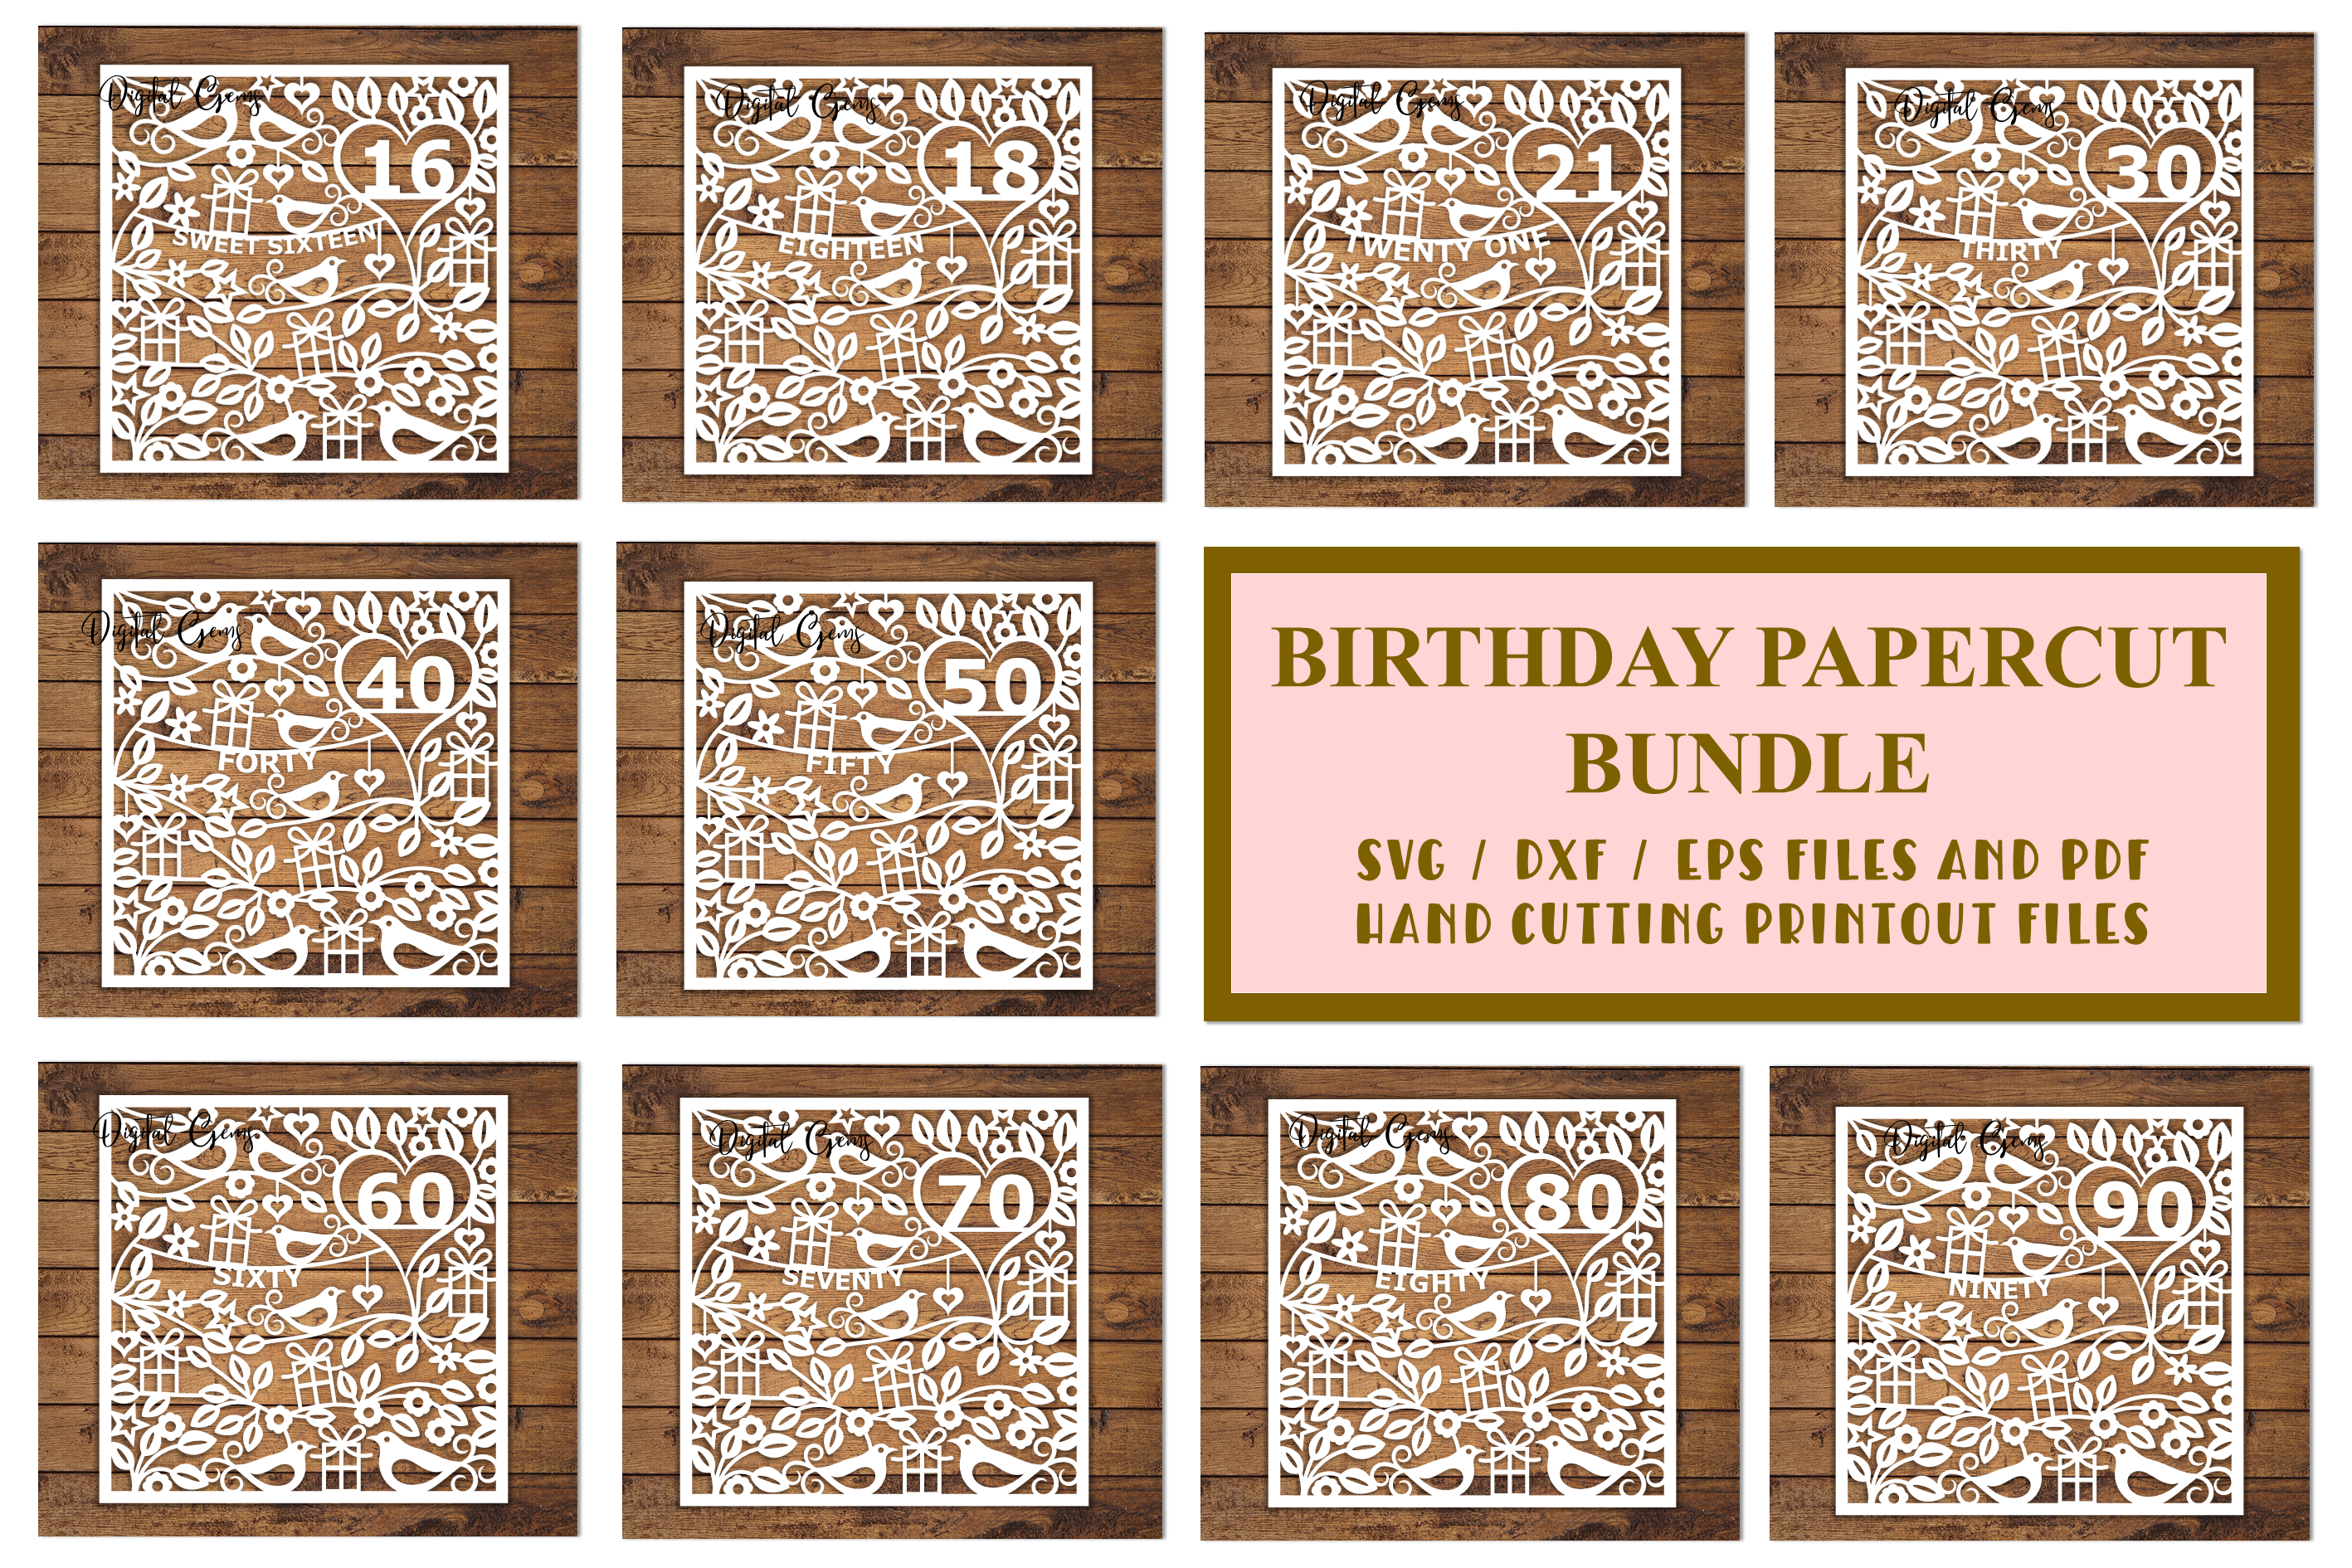 Birthday bundle. Paper cut SVG / DXF / EPS / PNG files example image 1